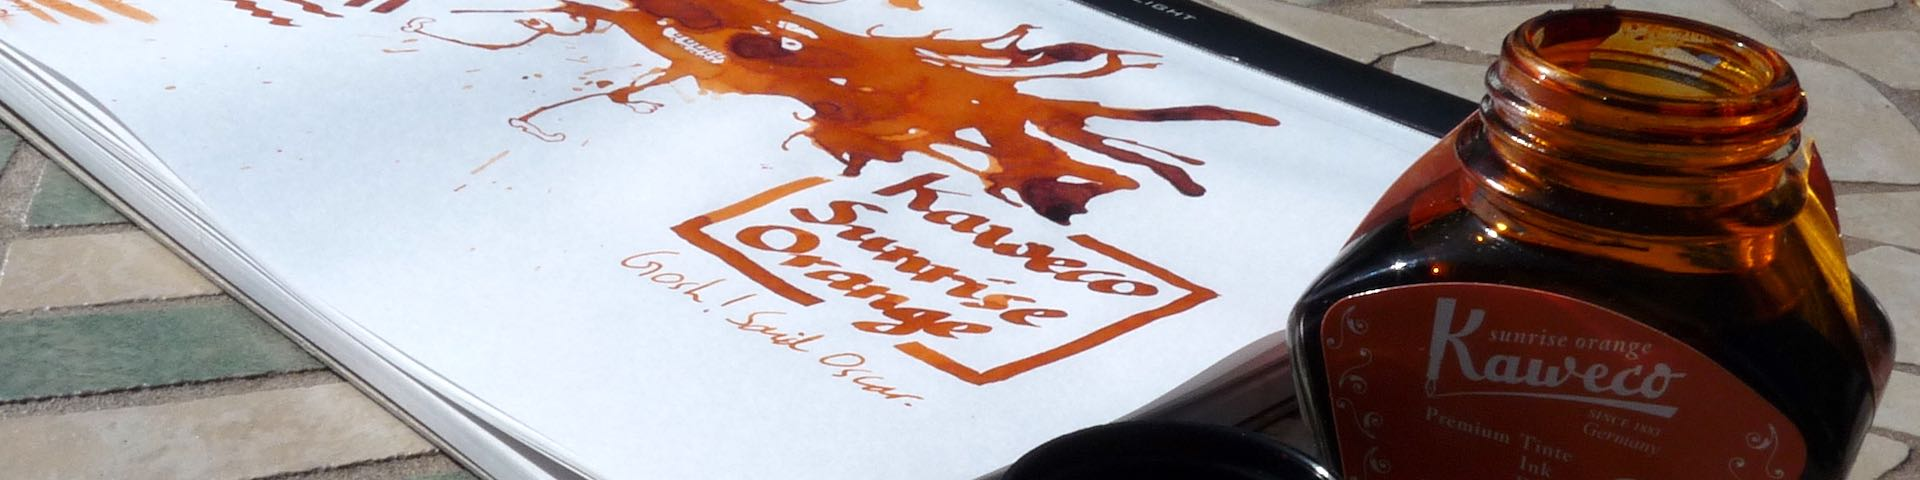 Kaweco Sunrise Orange featured